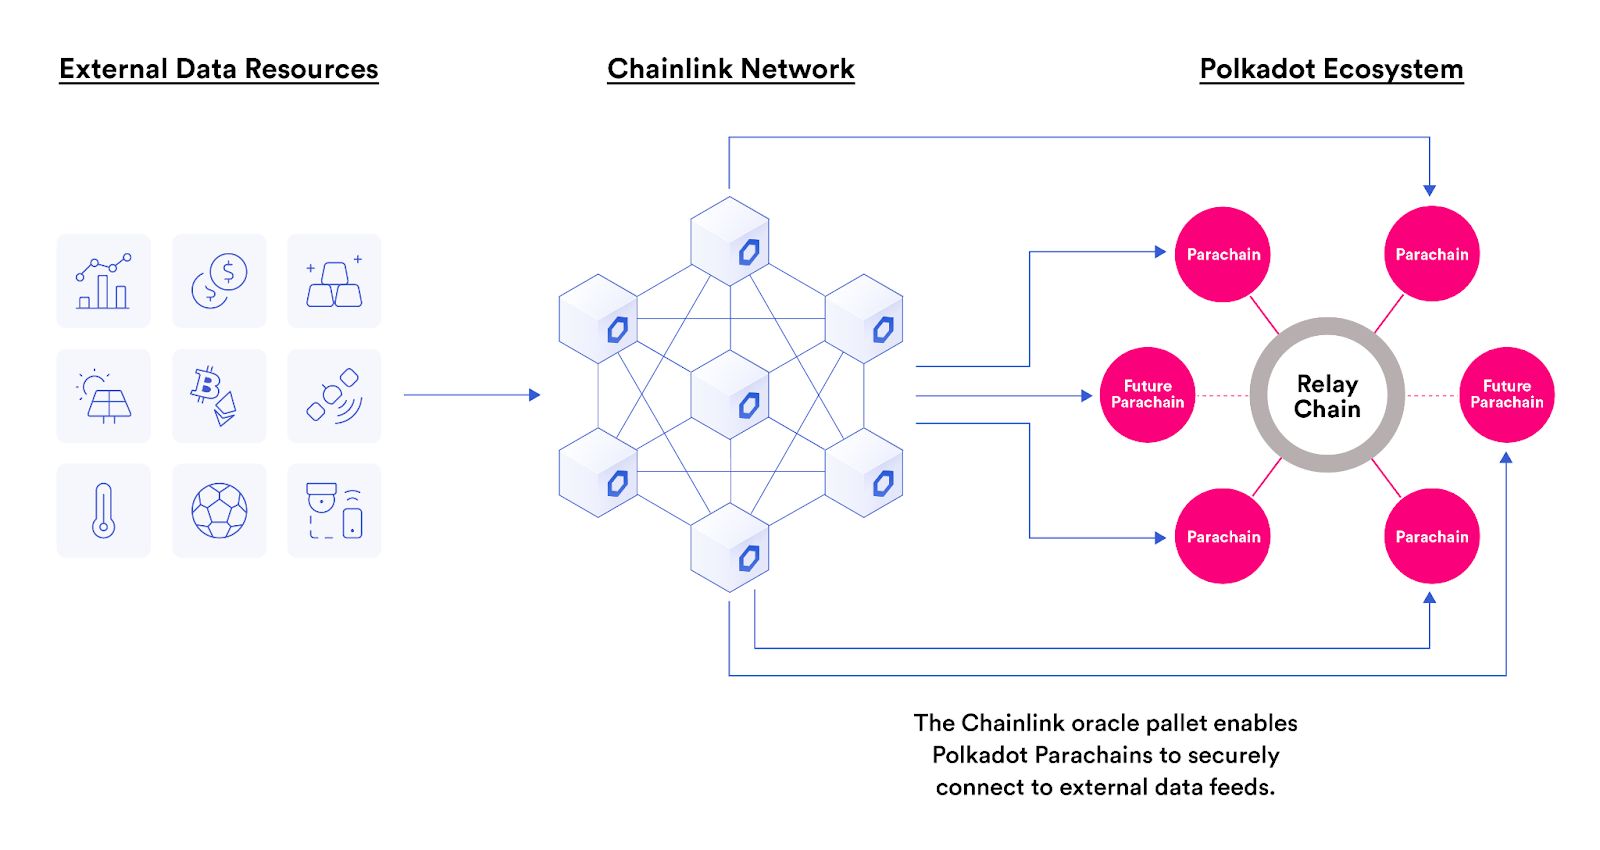 external data being accessed by polkadot ecosystem